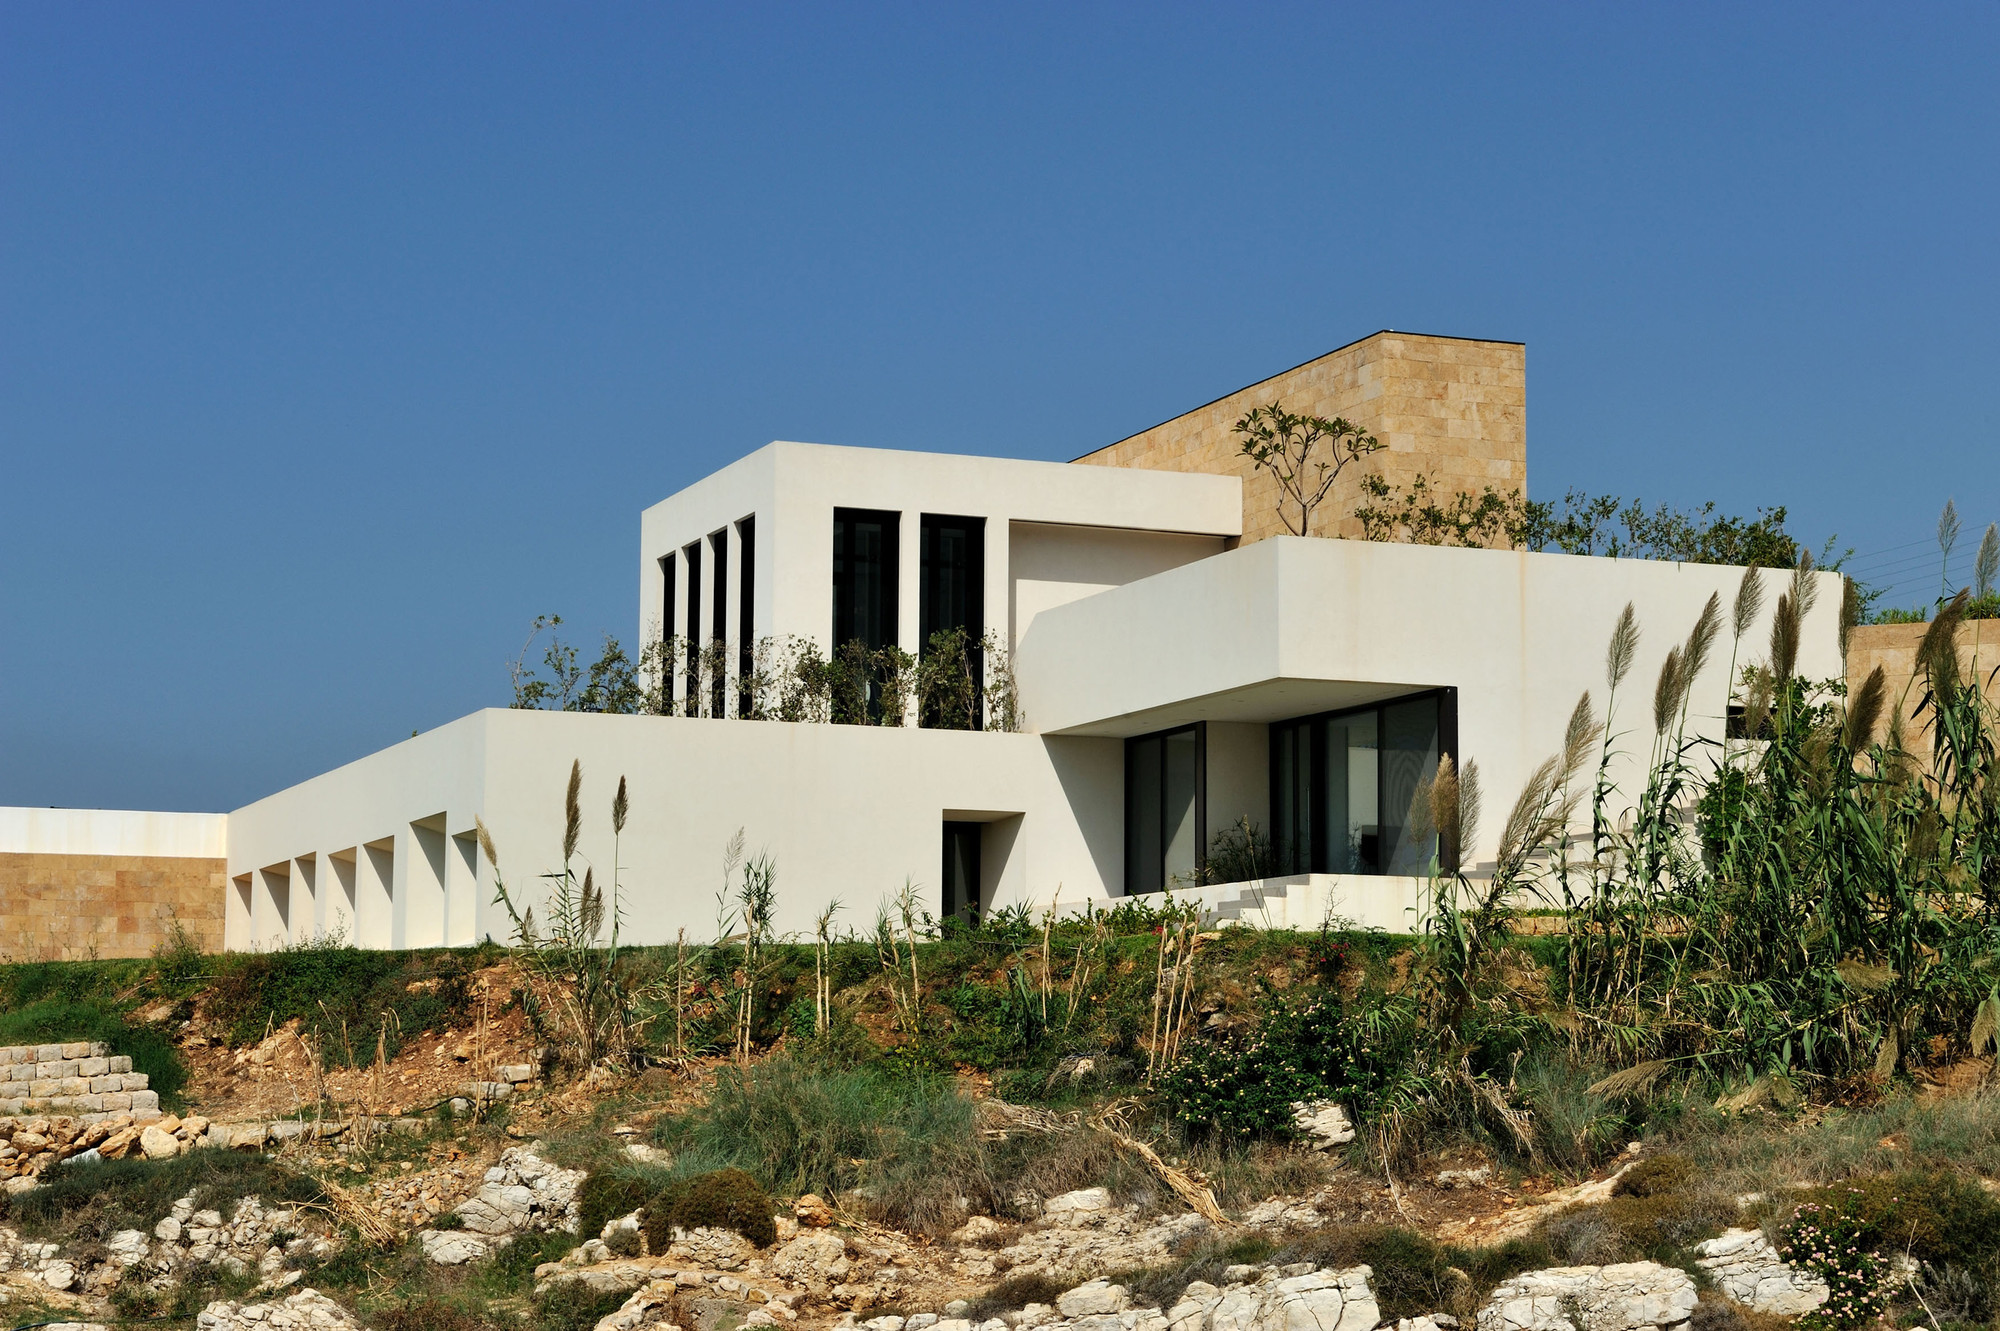 Fidar beach house raed abillama architects